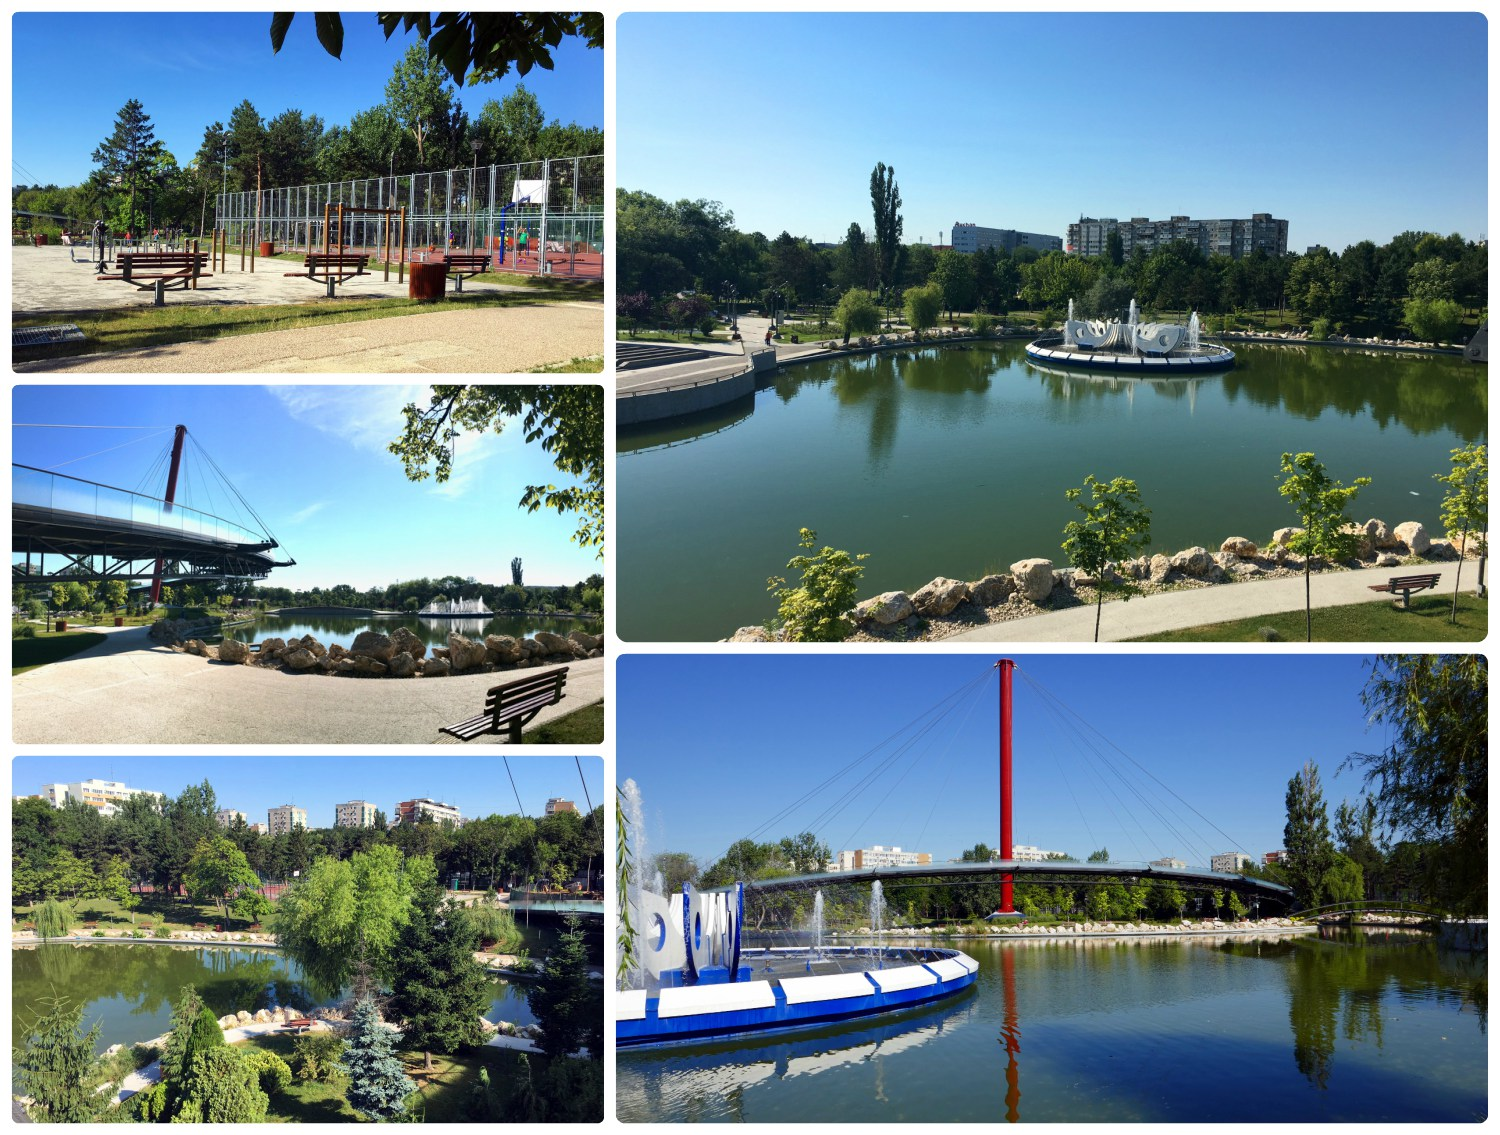 Tineretului Park has something for everyone. Clockwise (from the top): The workout area and basketball courts in the park, the lake in the center of the park with a contemporary fountain, over the center of the lake is a large arched pedestrian bridge, there are plenty of areas in the park that are covered from the sun by the shade of trees, while visiting be sure to take a stroll around the lake or take a break on one of the many benches.